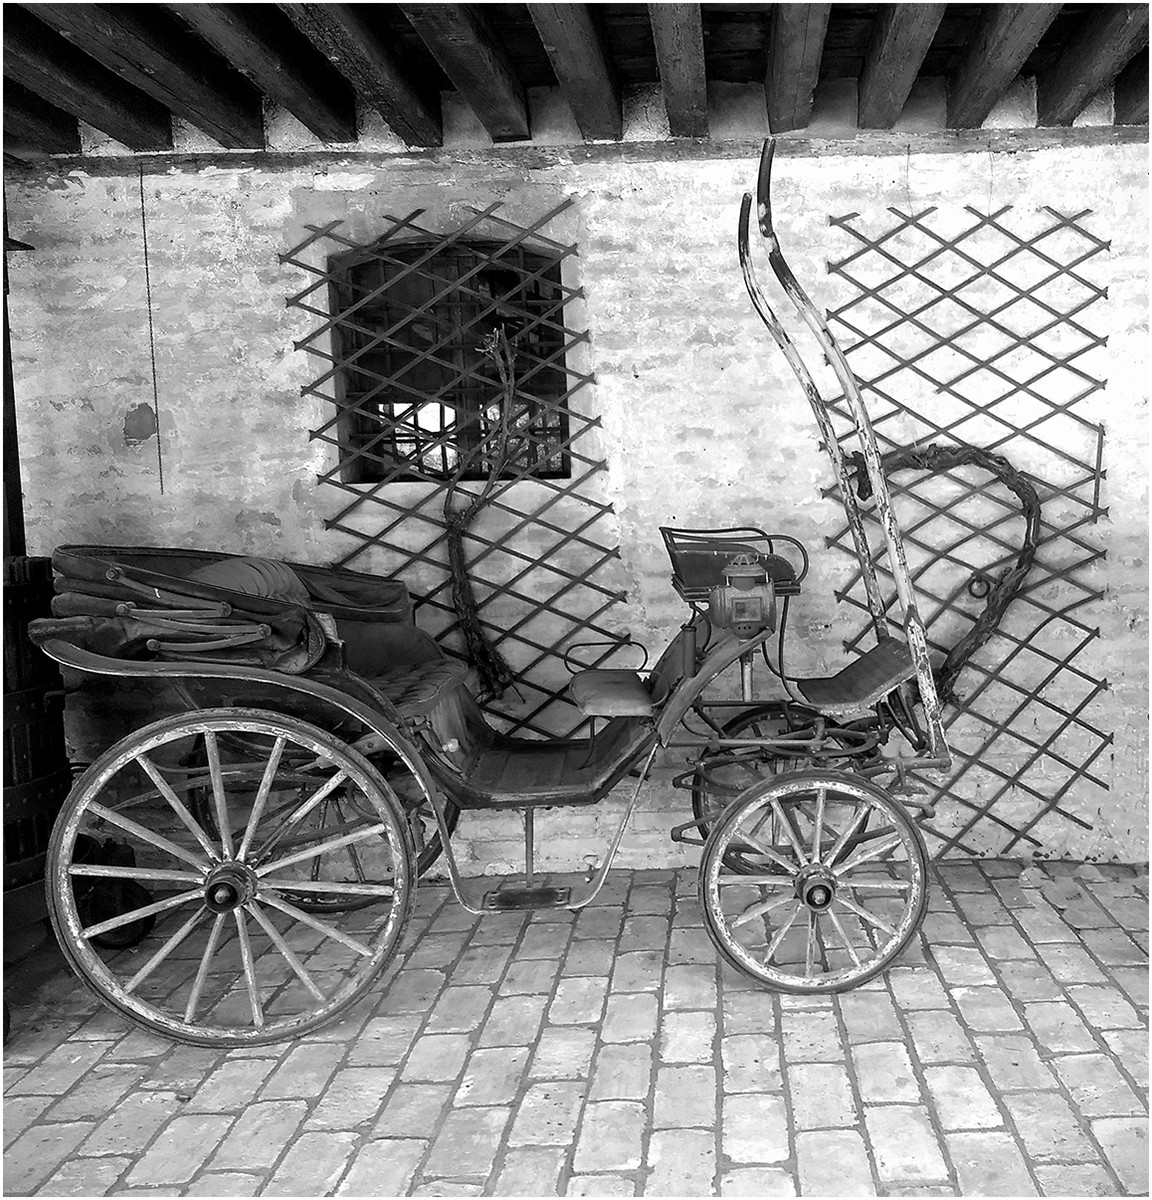 MONO - A Horseless Carriage by Pat Seenan ( 6 marks)